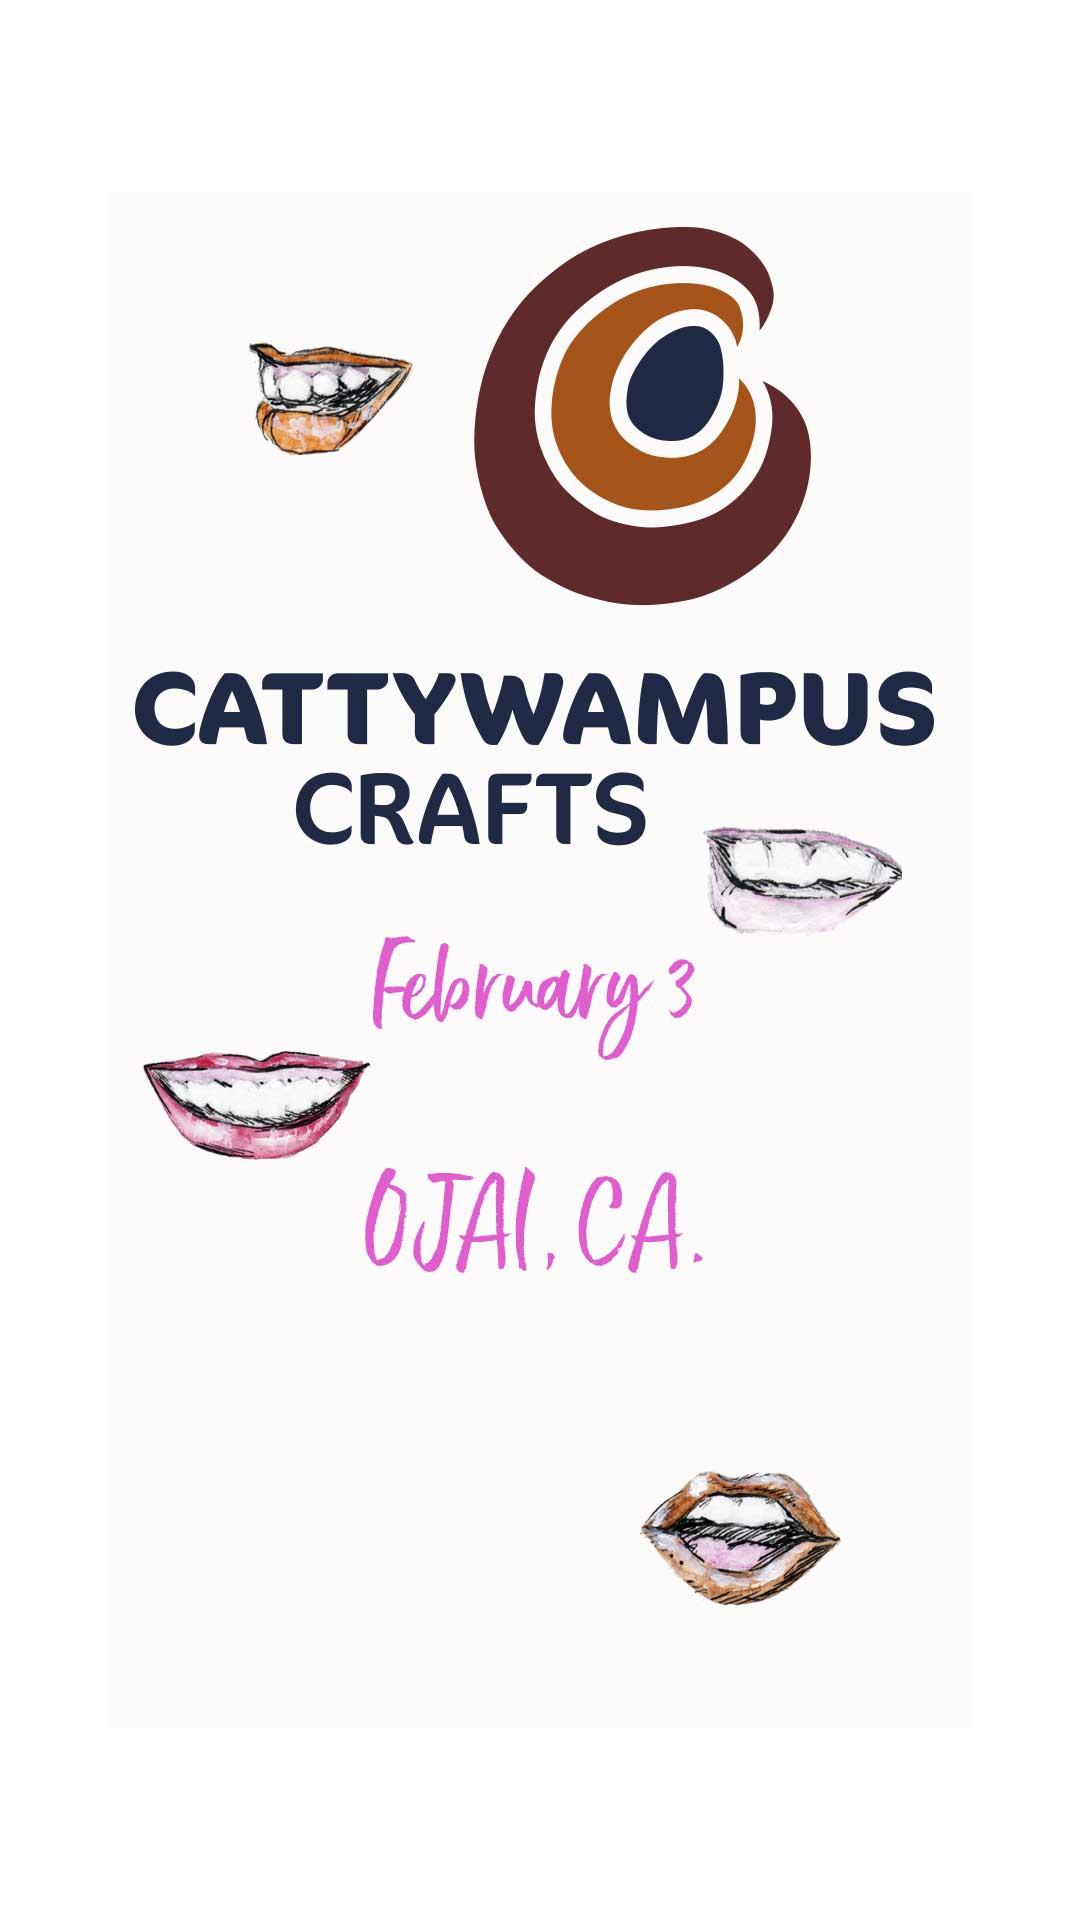 Cattywampus Crafts Ojai, CA